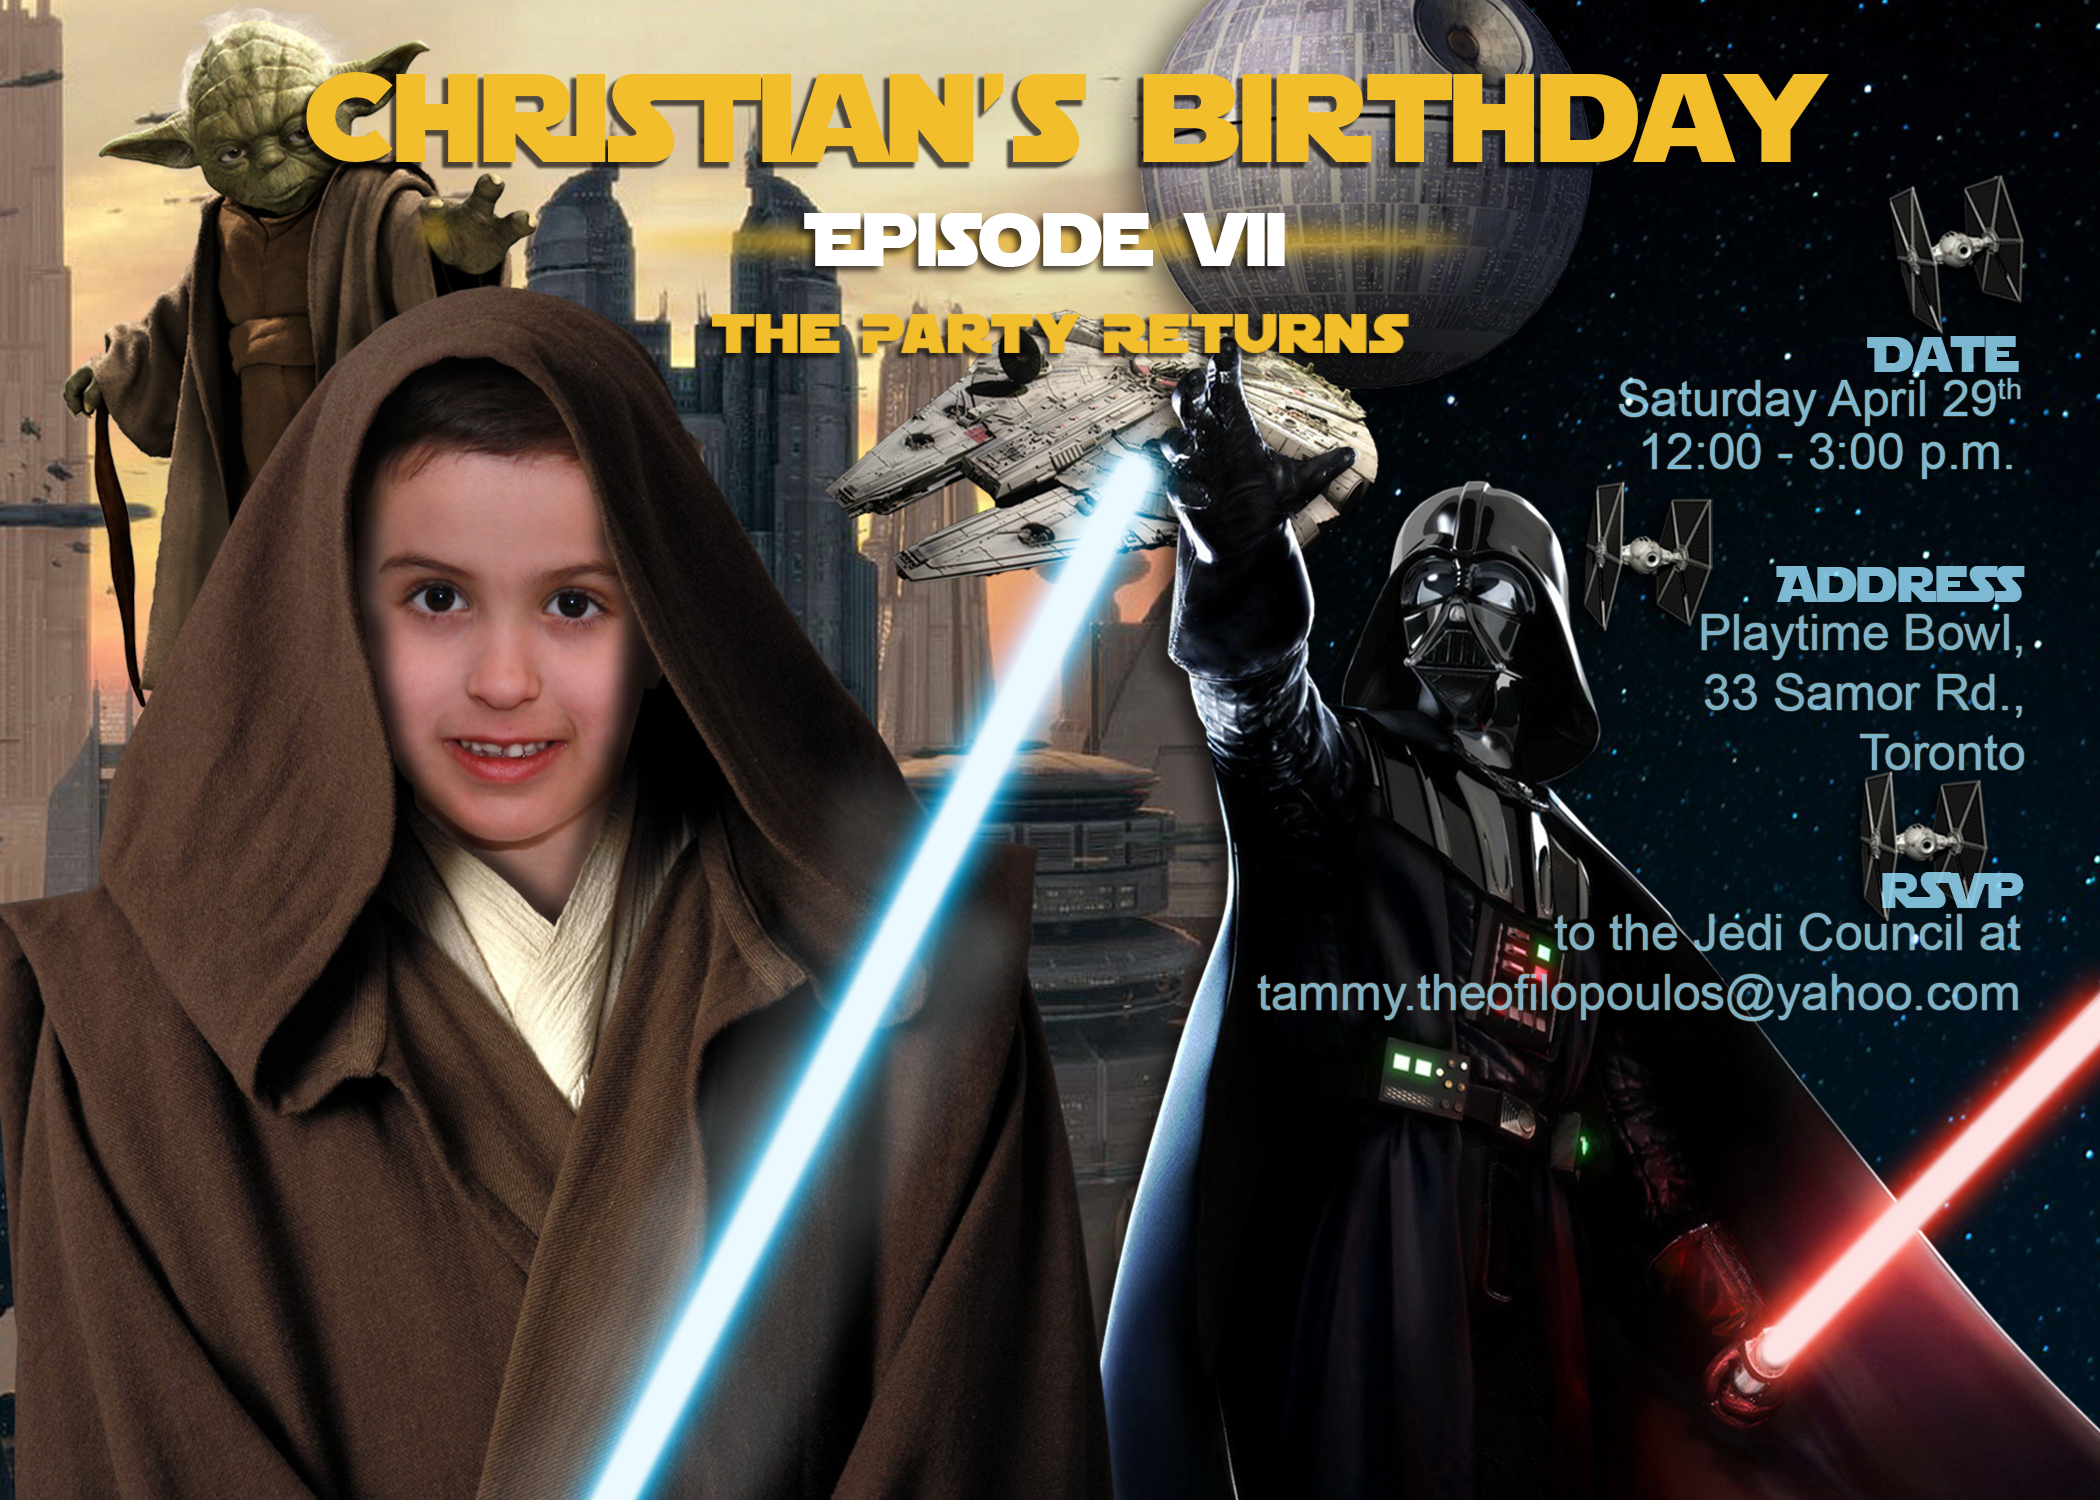 Ultimate Star Wars Birthday Party – Life's My Party